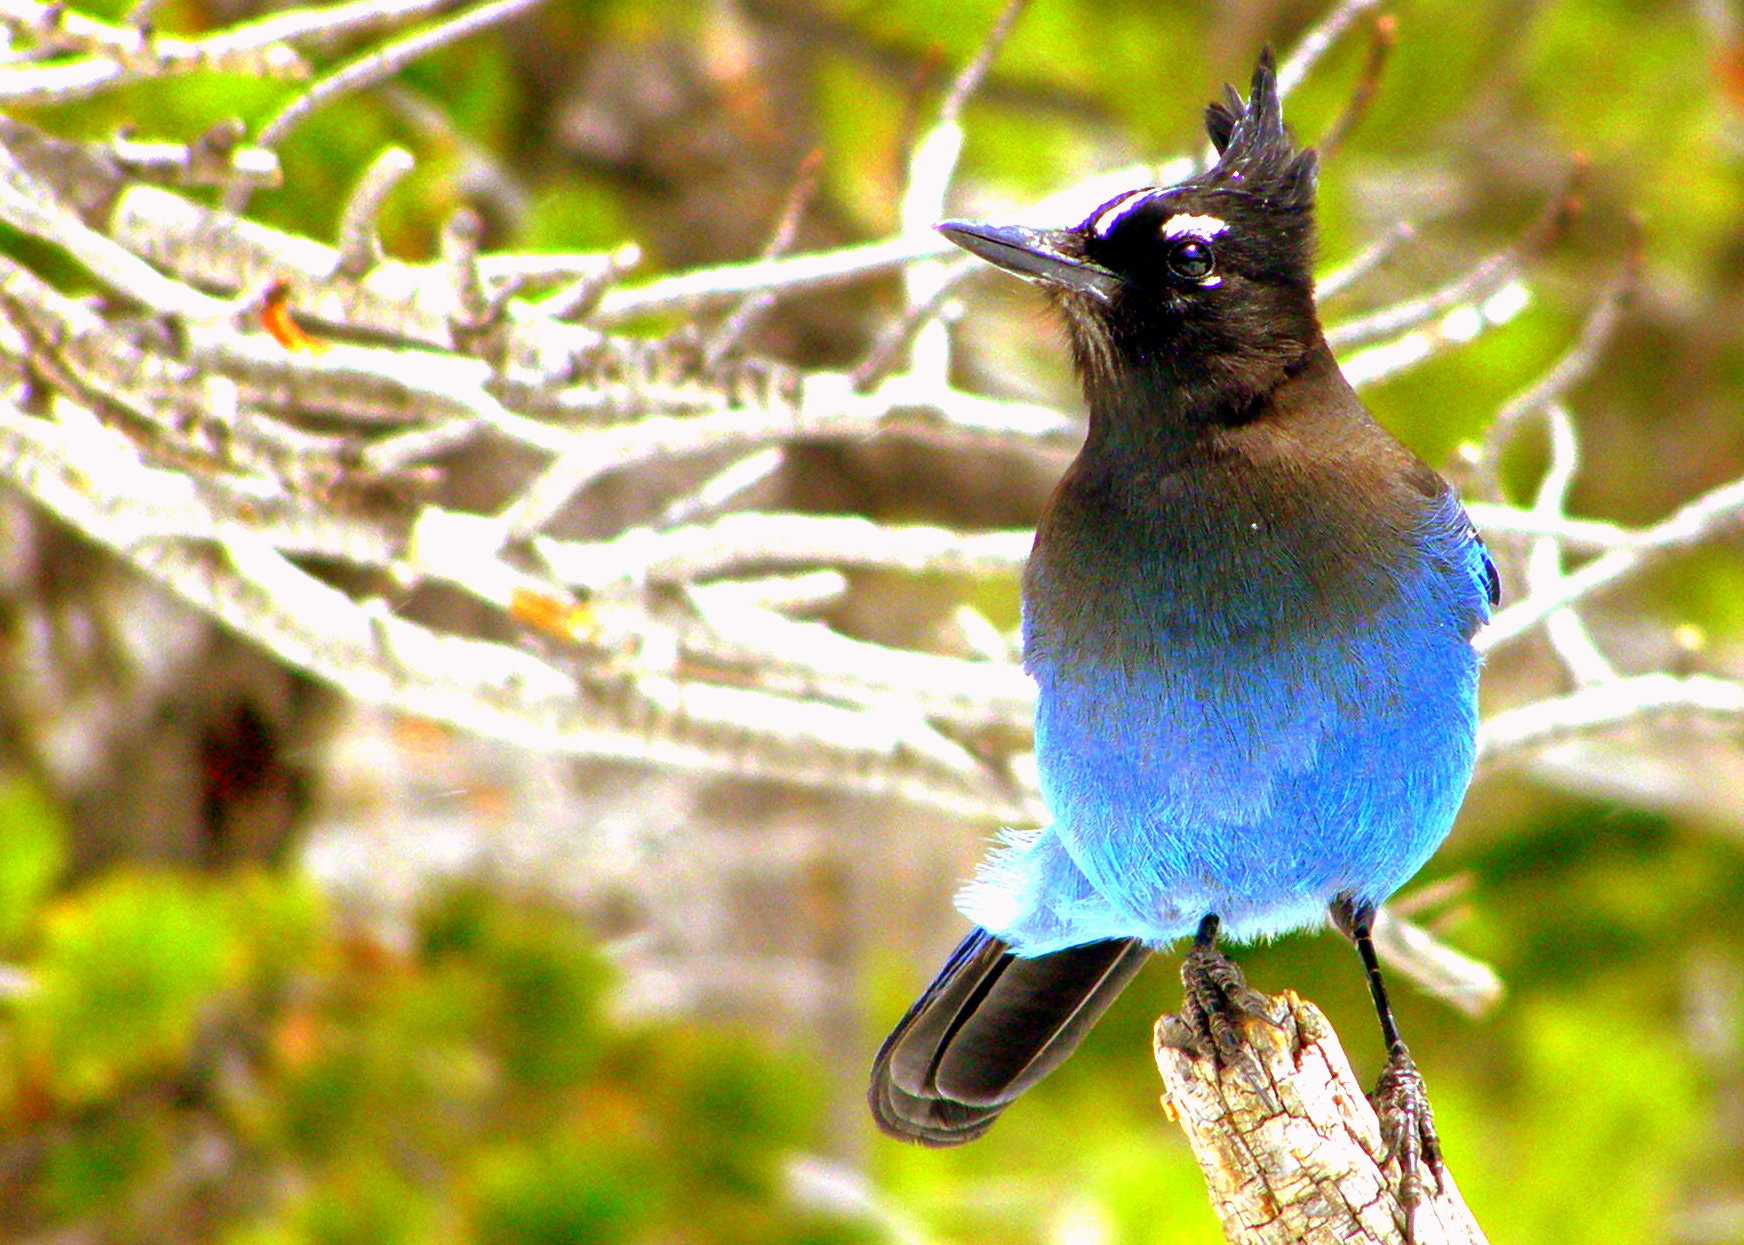 Photograph Friendly steller's jay by CAN4 on 500px